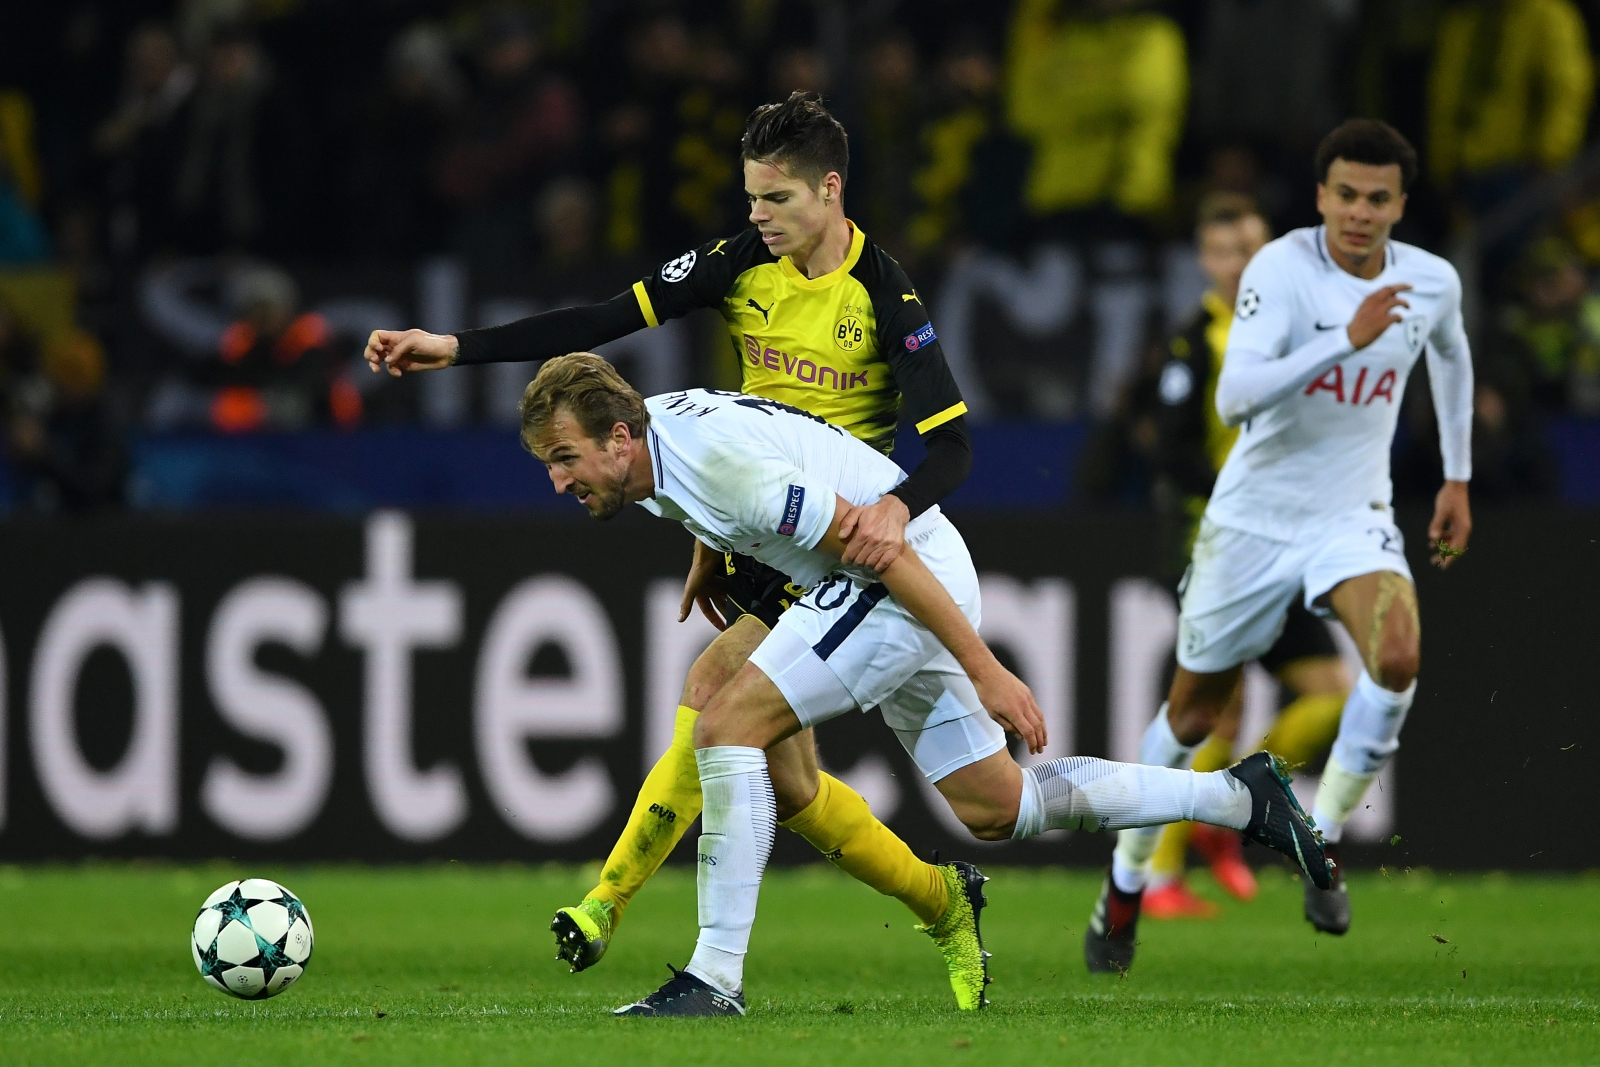 dele-alli-and-harry-kane-reflect-on-their-win-over-borussia-dortmund